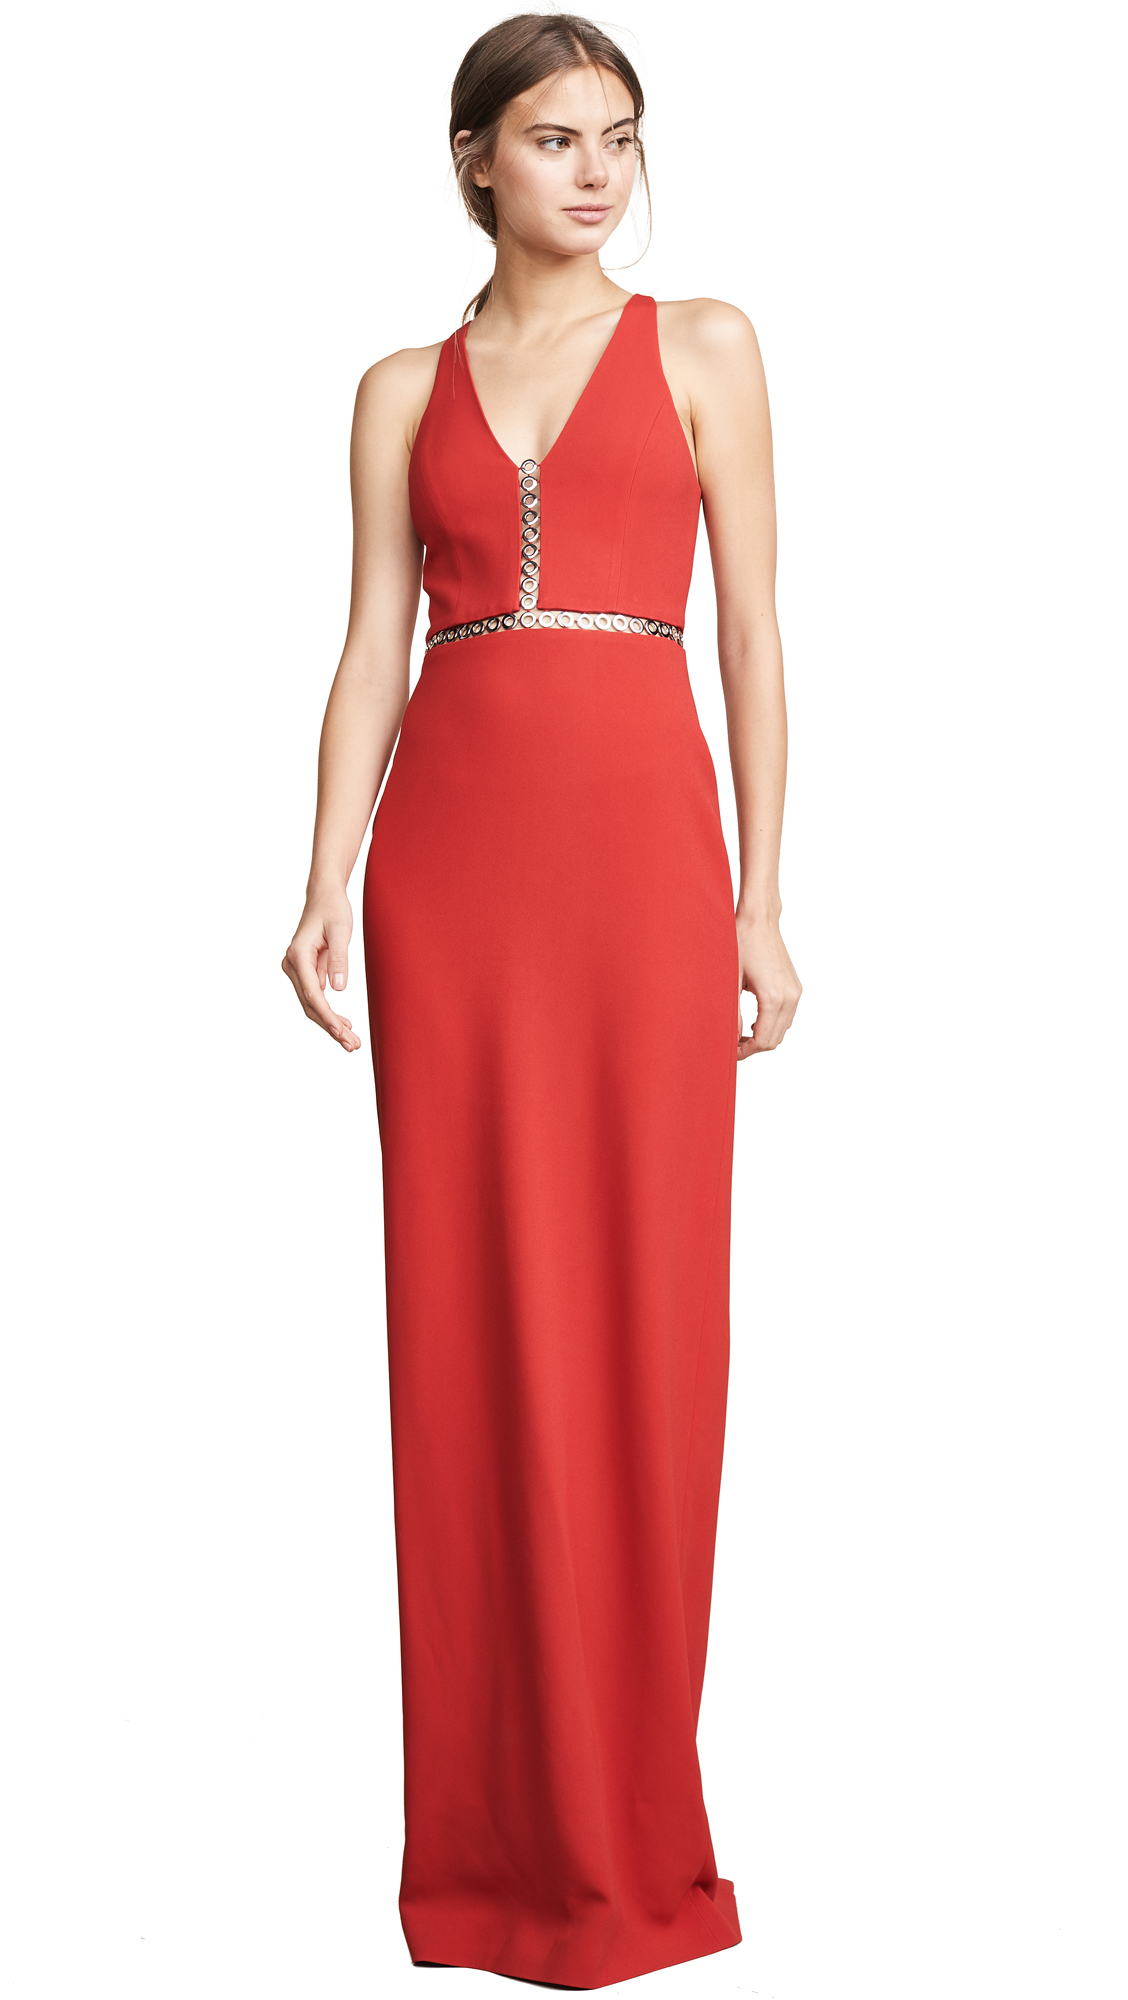 Grommet-Inset Crepe Gown - Red Size 0